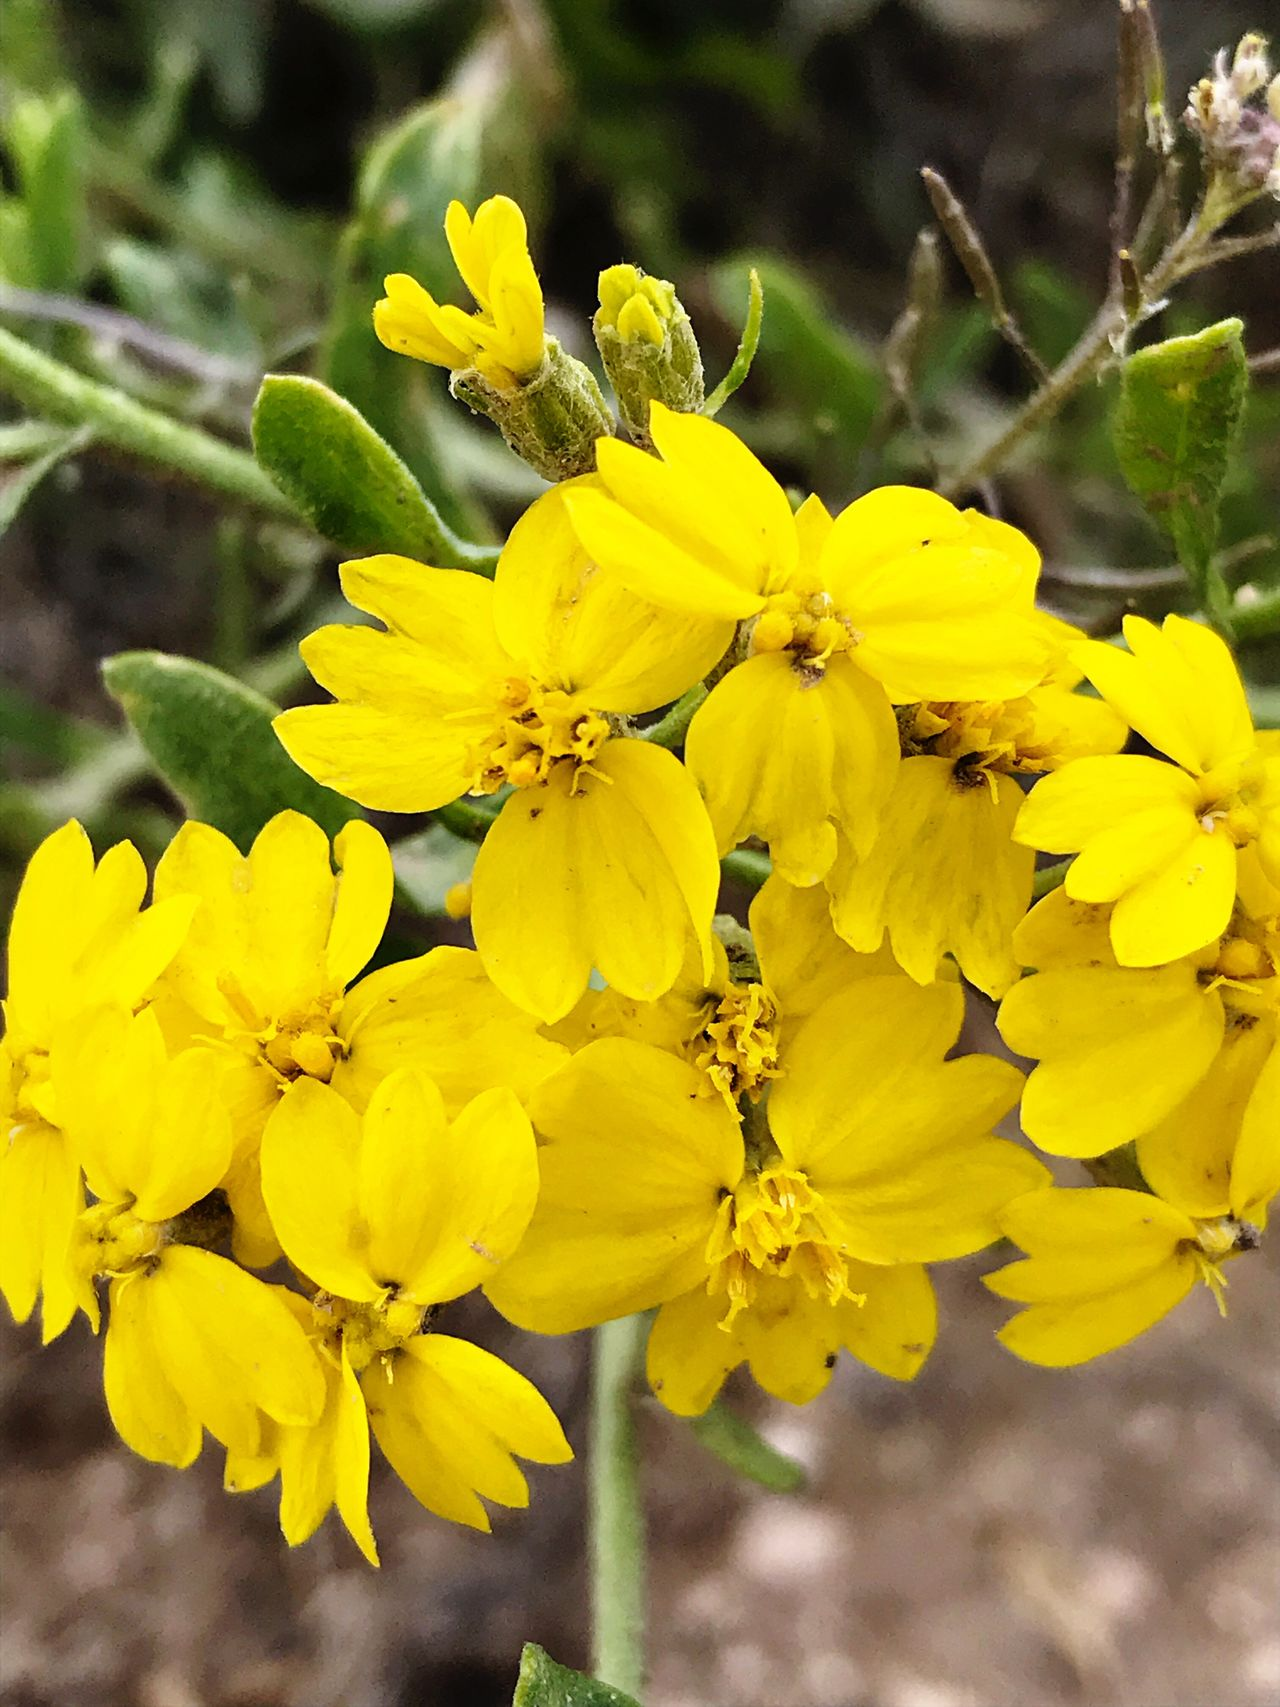 """""""Yellow Bouquet"""" Nature's florist delivers a beautiful yellow bouquet to the New Mexico countryside. Flower Yellow Beauty In Nature Freshness Blooming Wildflowers Yellow Flower Nature Nature Flower Head New Mexico Newmexicophotography"""